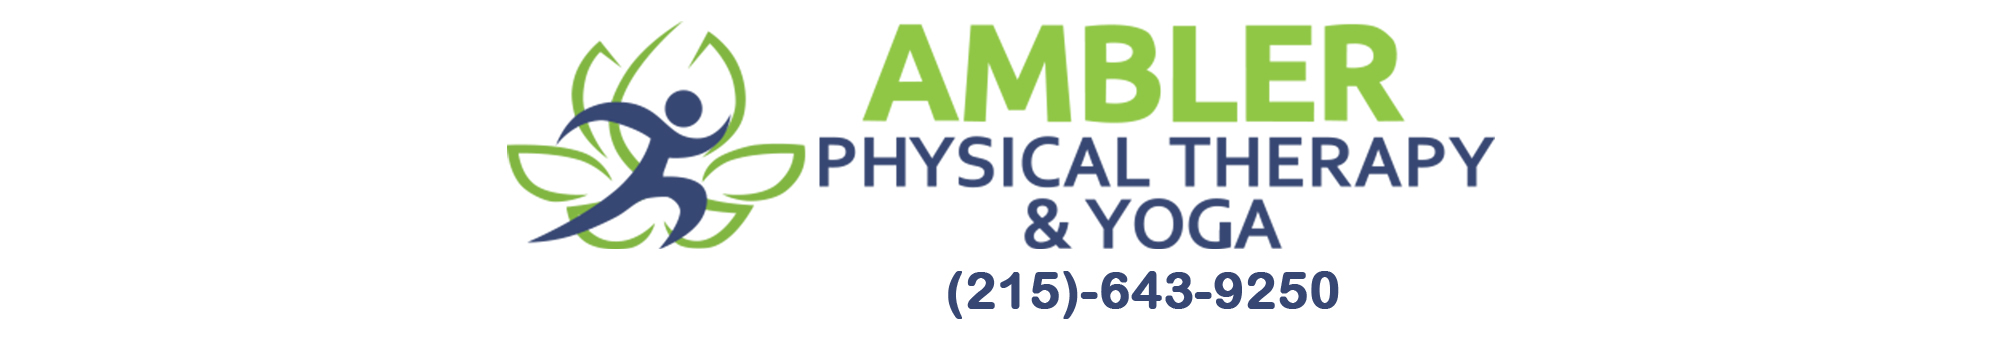 Ambler Physical Therapy & Sports Rehabilitation